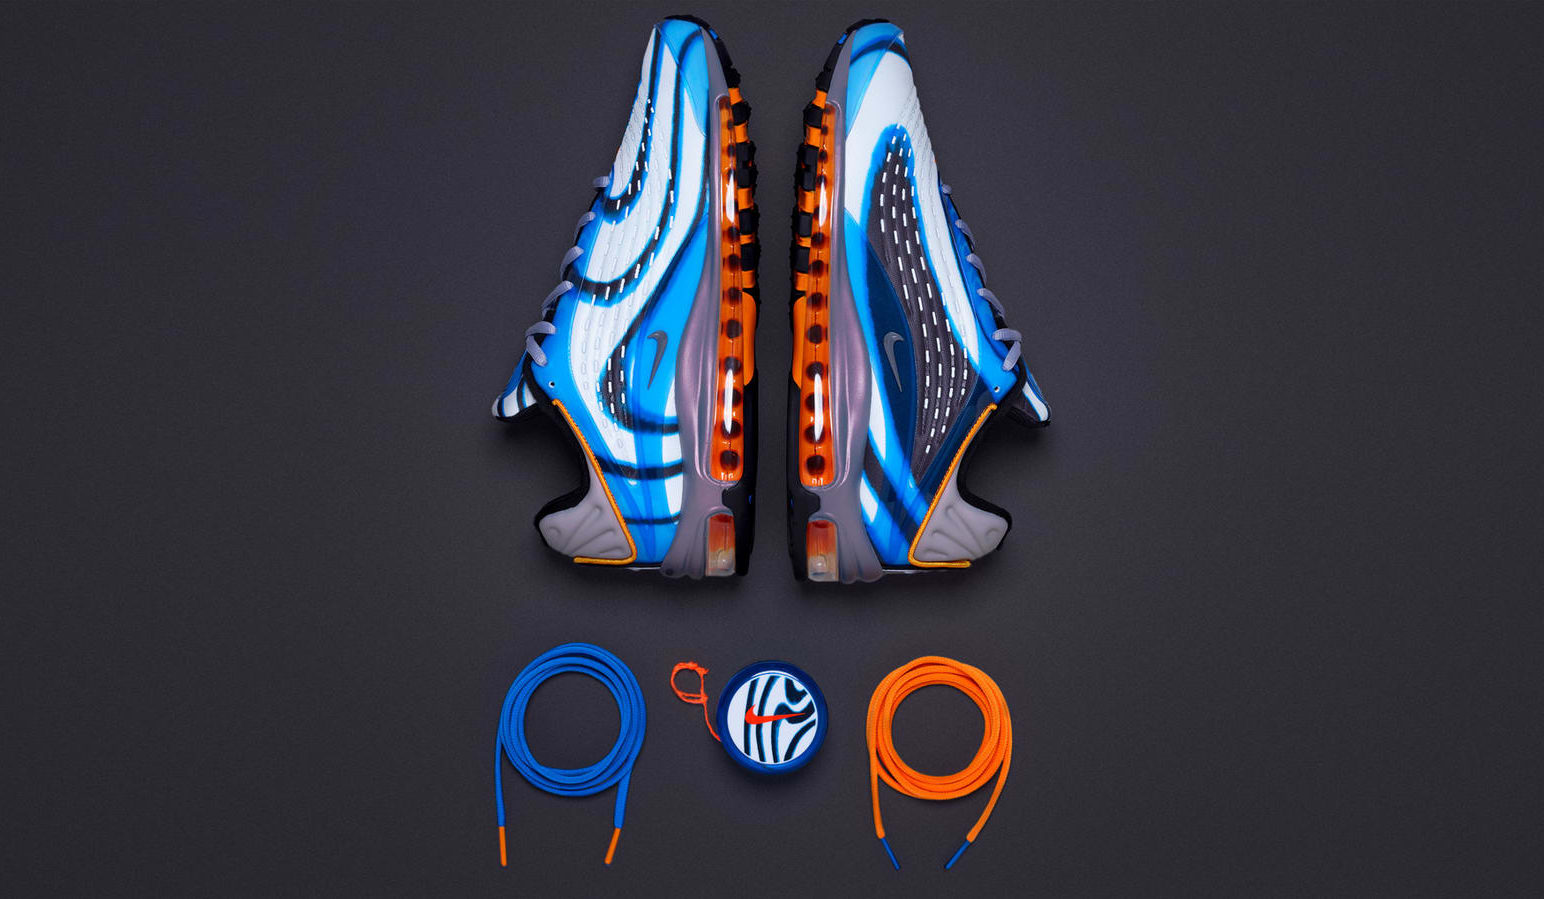 Nike Air Max Deluxe 'Photo Blue' Friends and Family